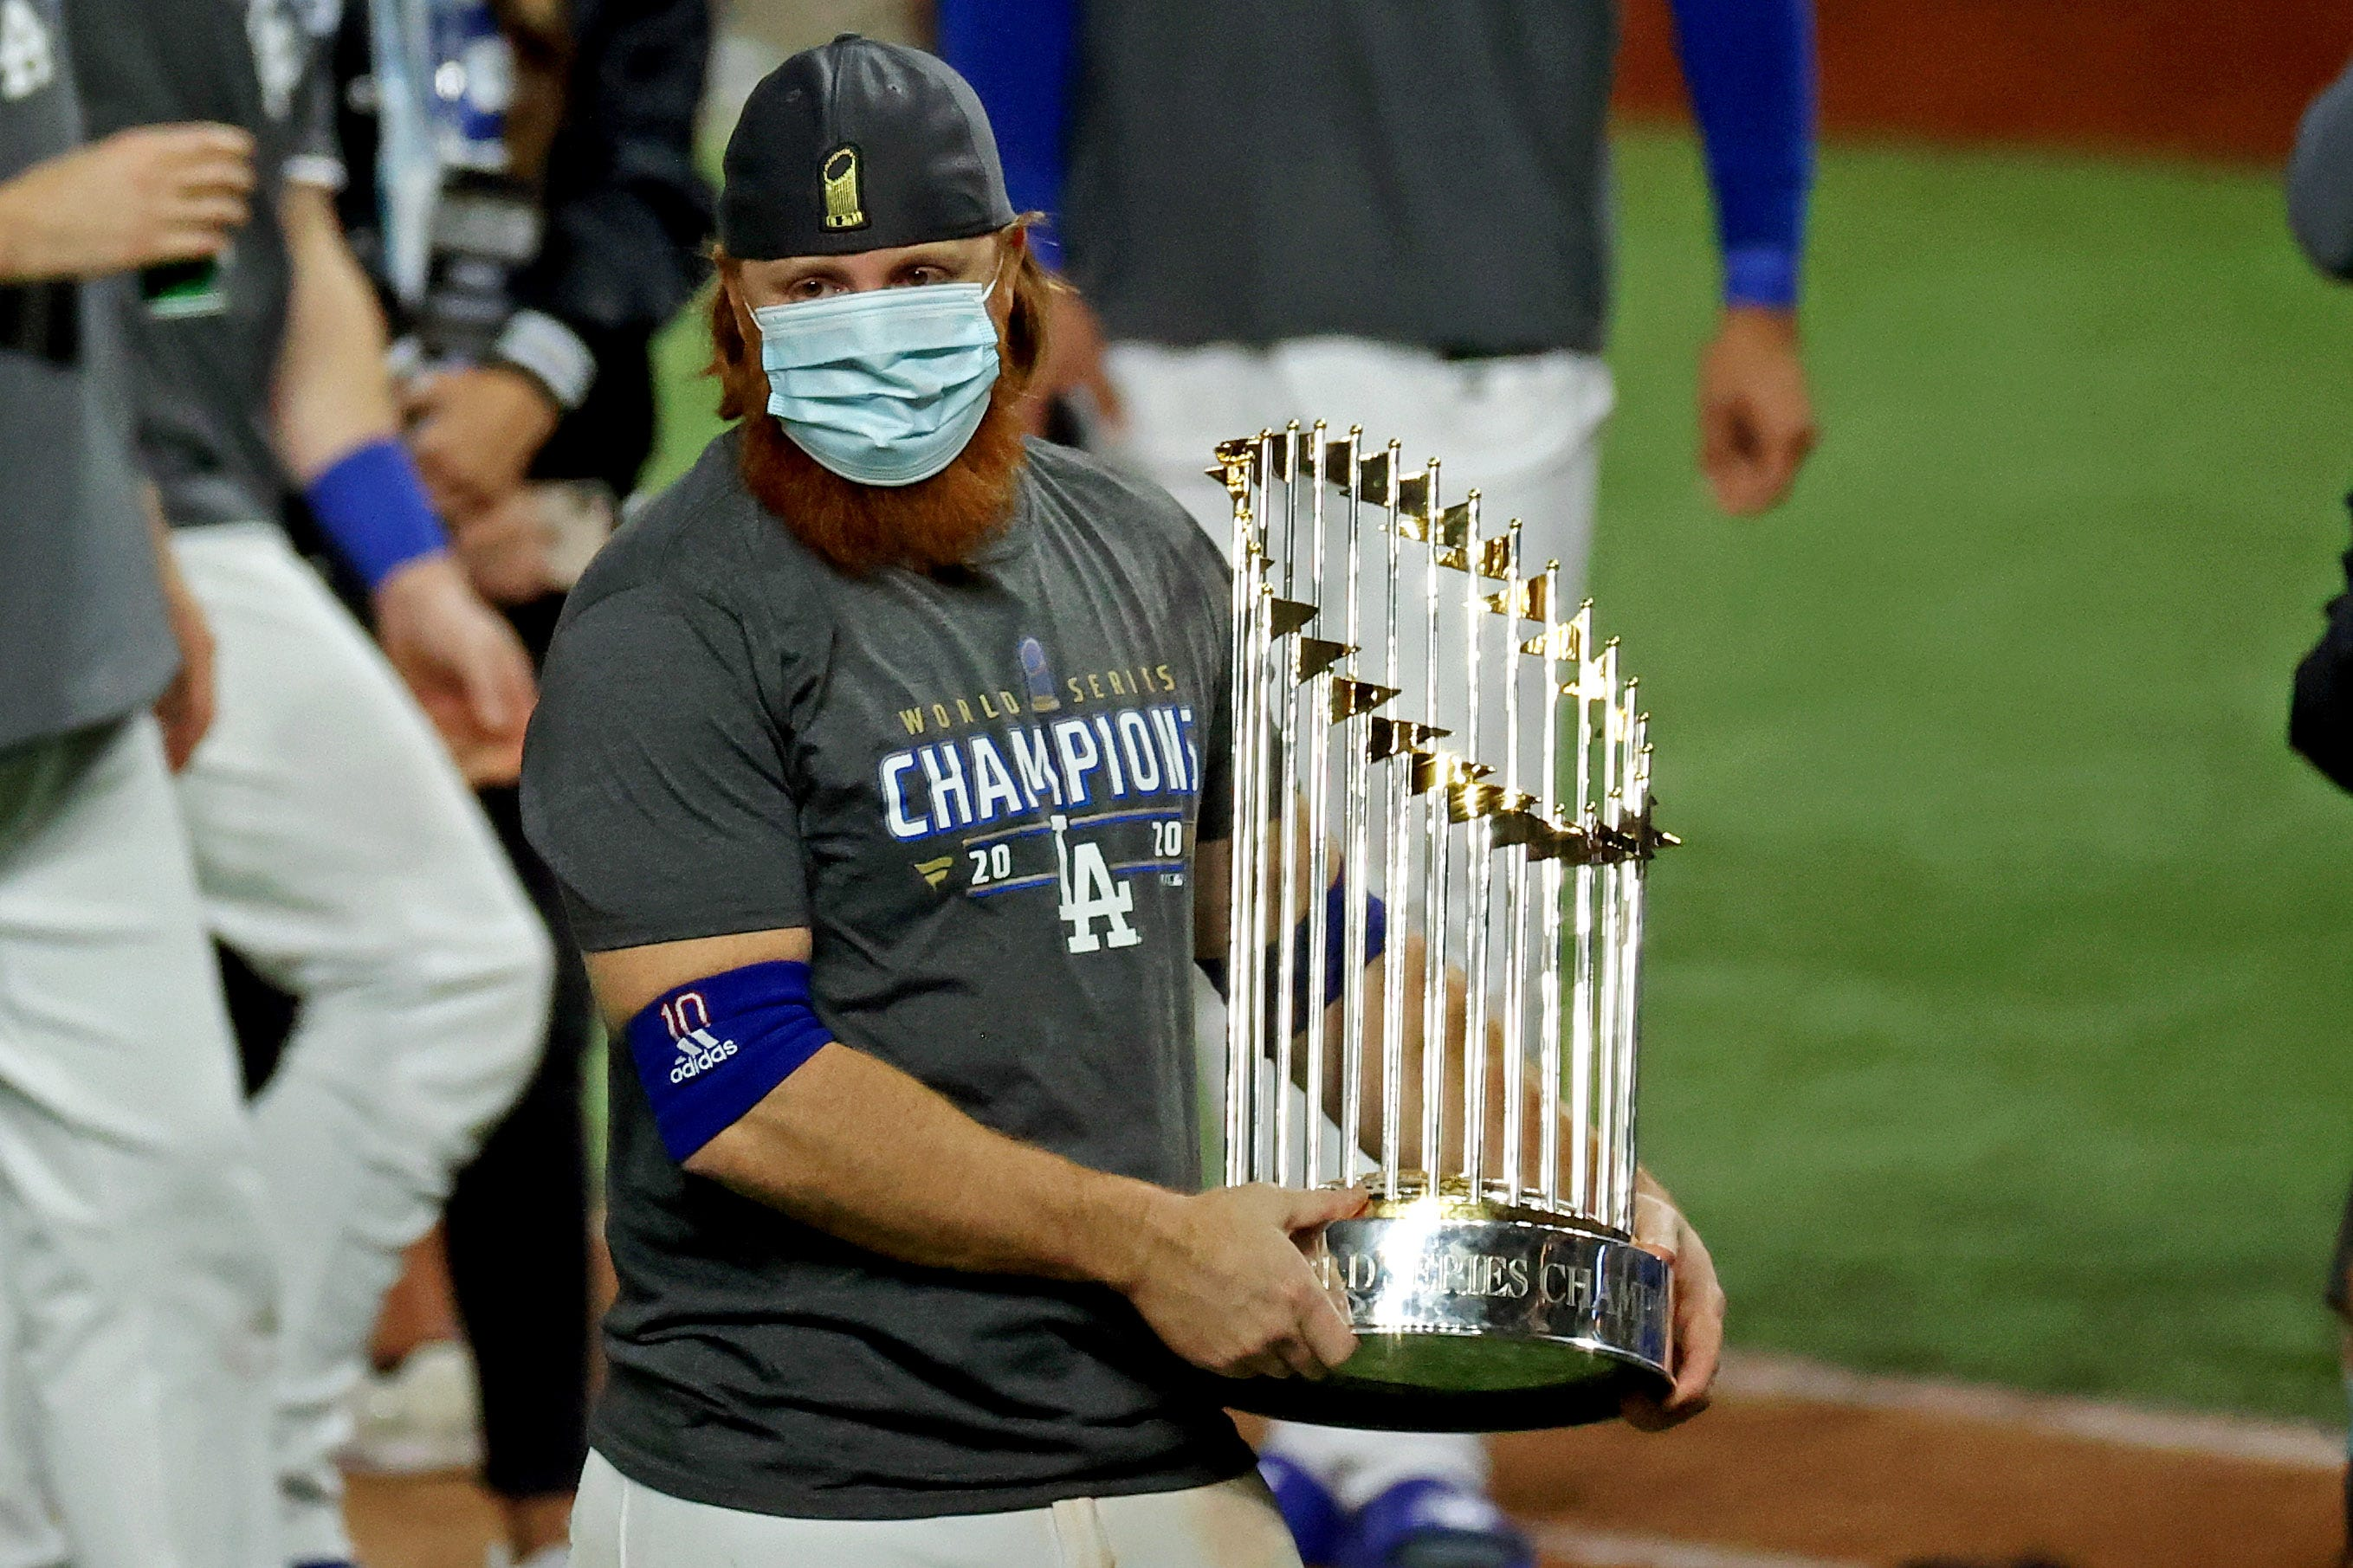 Dodgers' Justin Turner left World Series Game 6 with positive COVID-19 test, returns to field for celebration